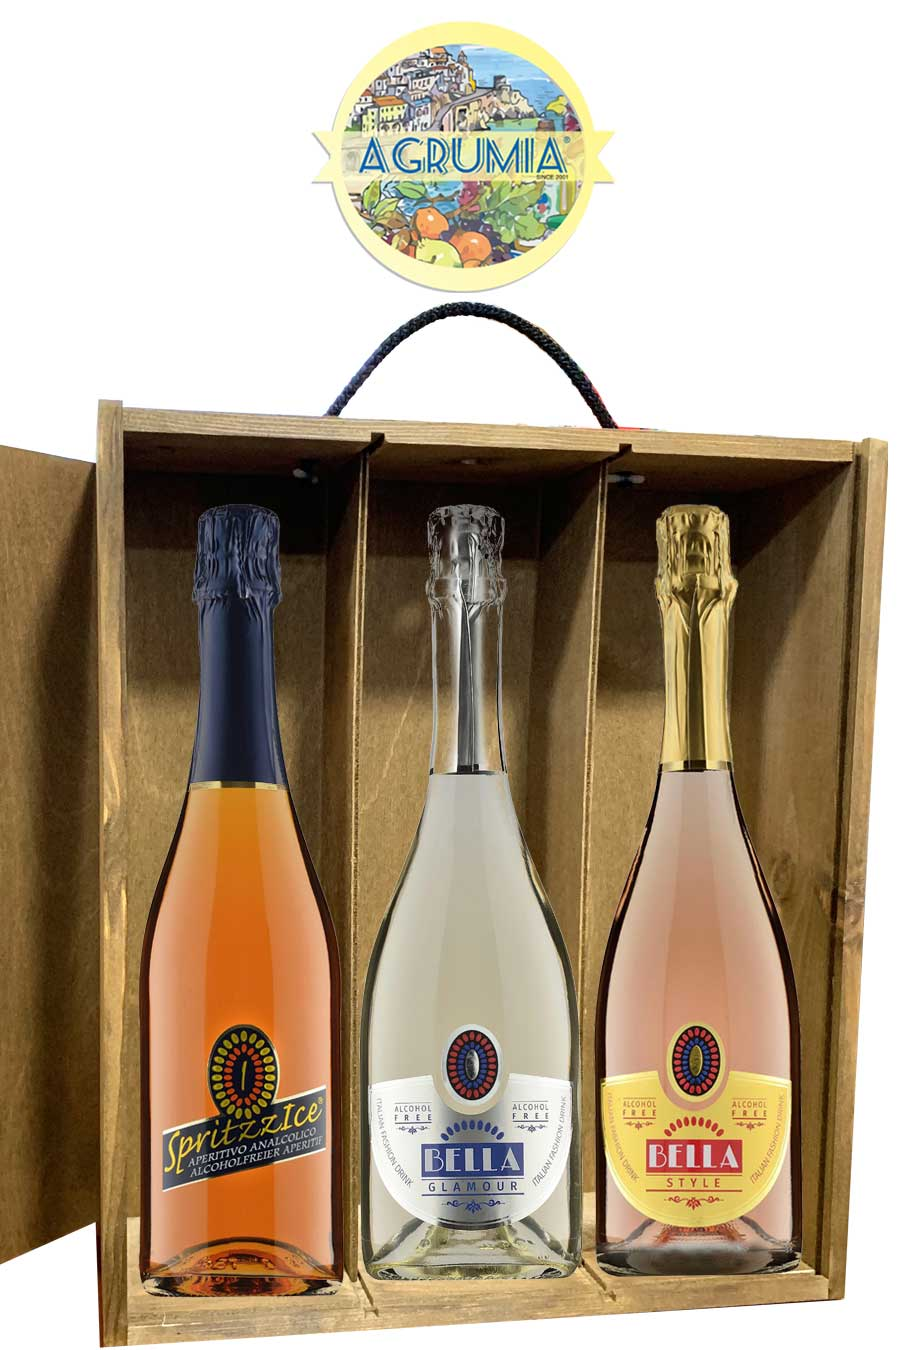 Agrumia Alcohol-Free Wine Hamper Set